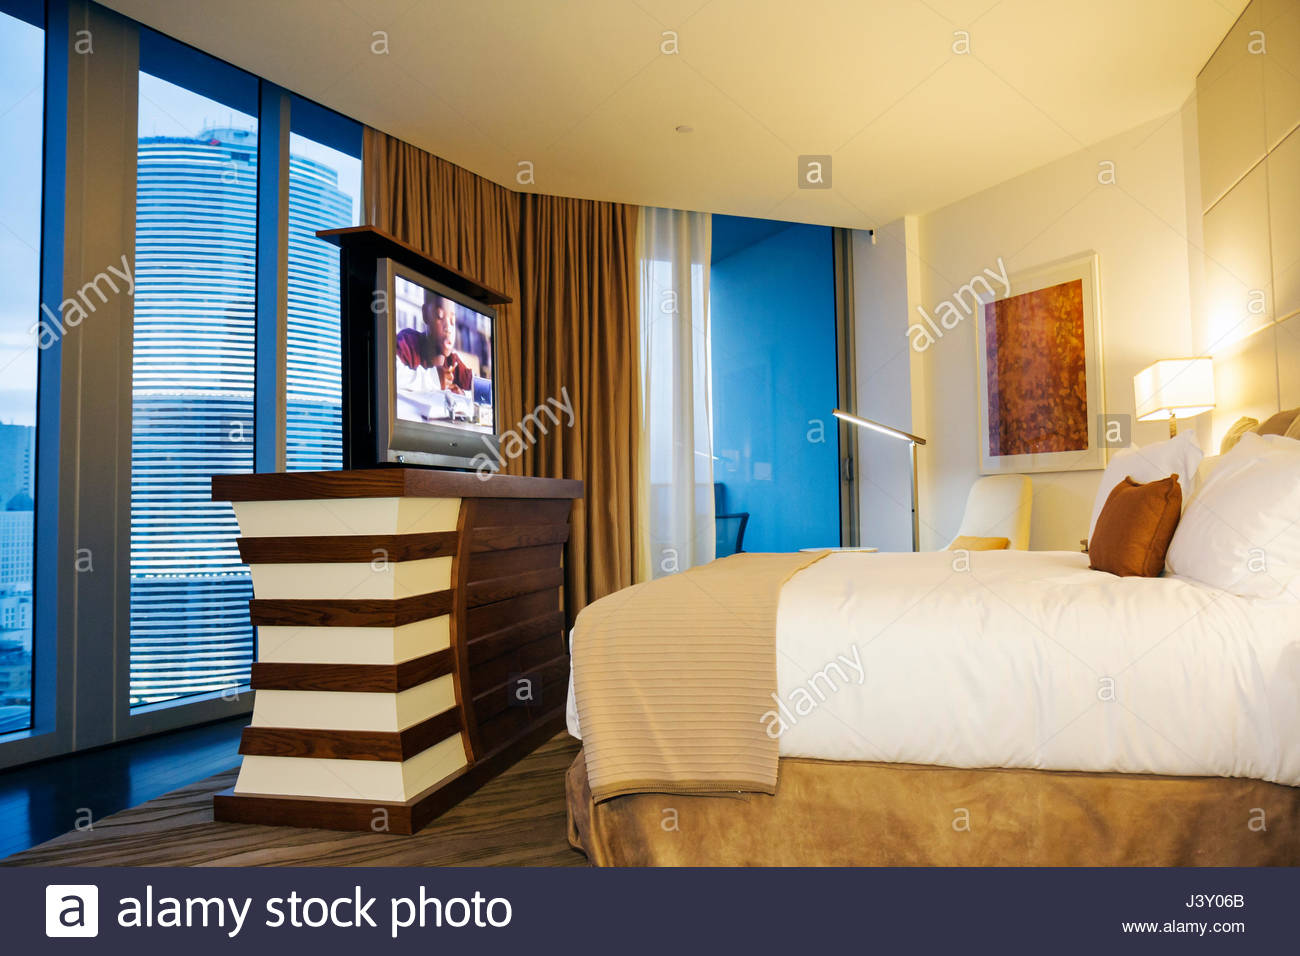 miami florida epic hotel luxury boutique lodging hospitality guest room bed lamps side tables flat screen tv modern decor